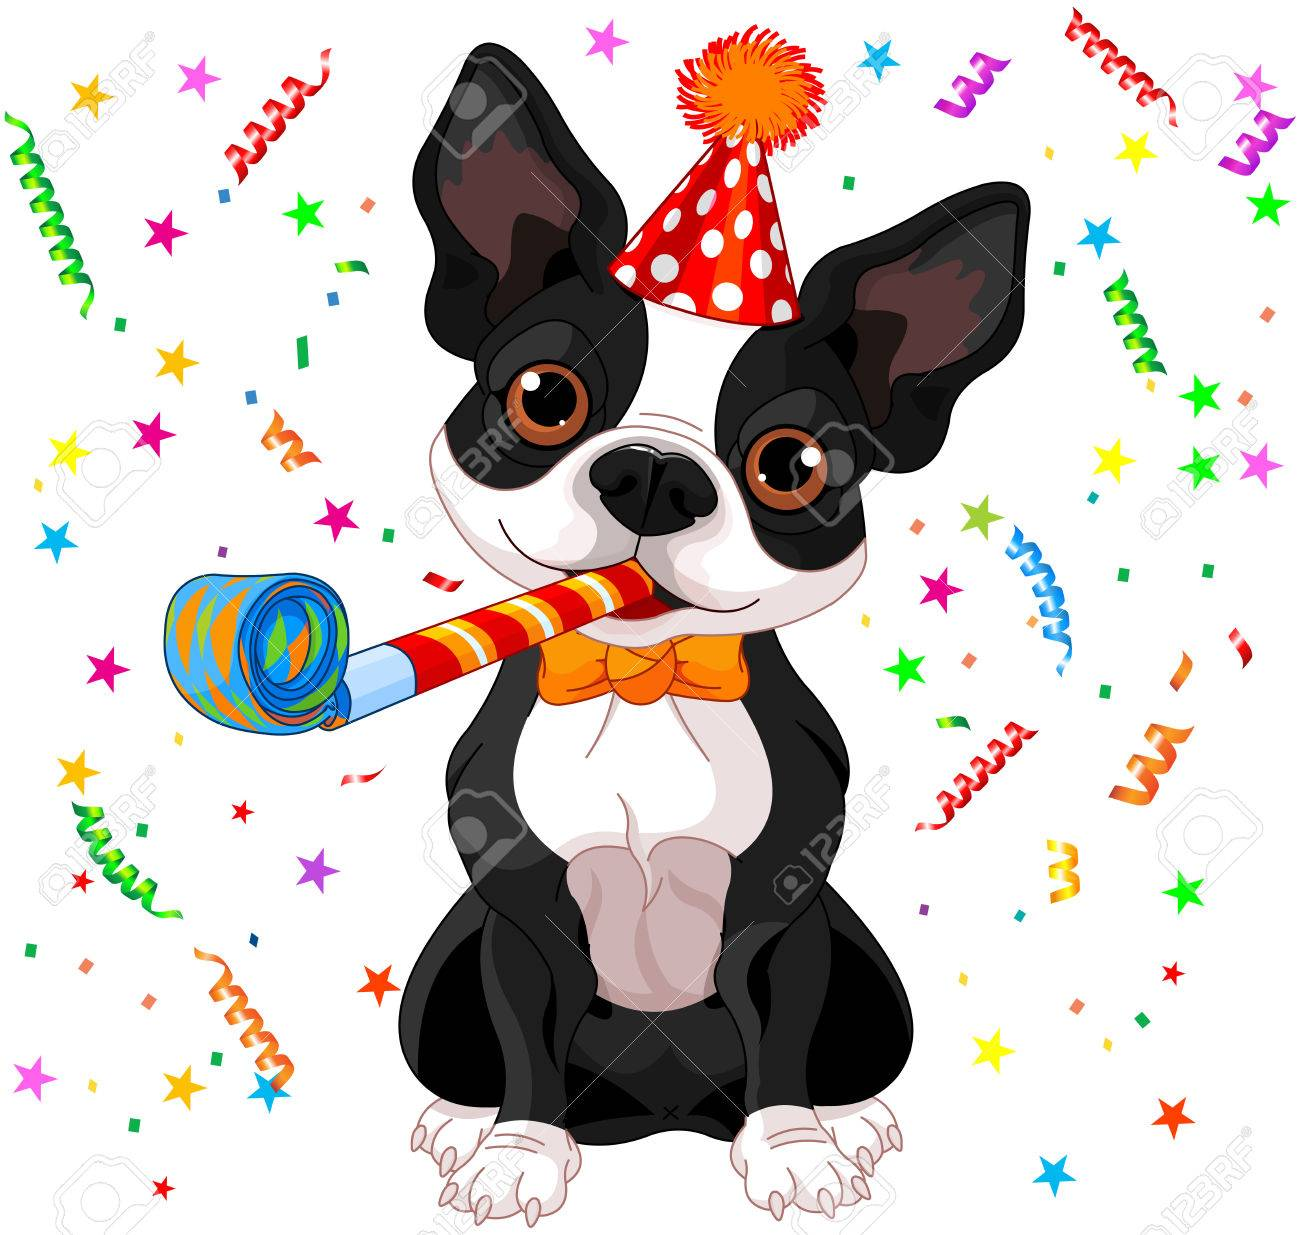 Dissuader les passants de caresser mon chiot - Page 2 35588778-illustration-of-cute-boston-terrier-celebrating